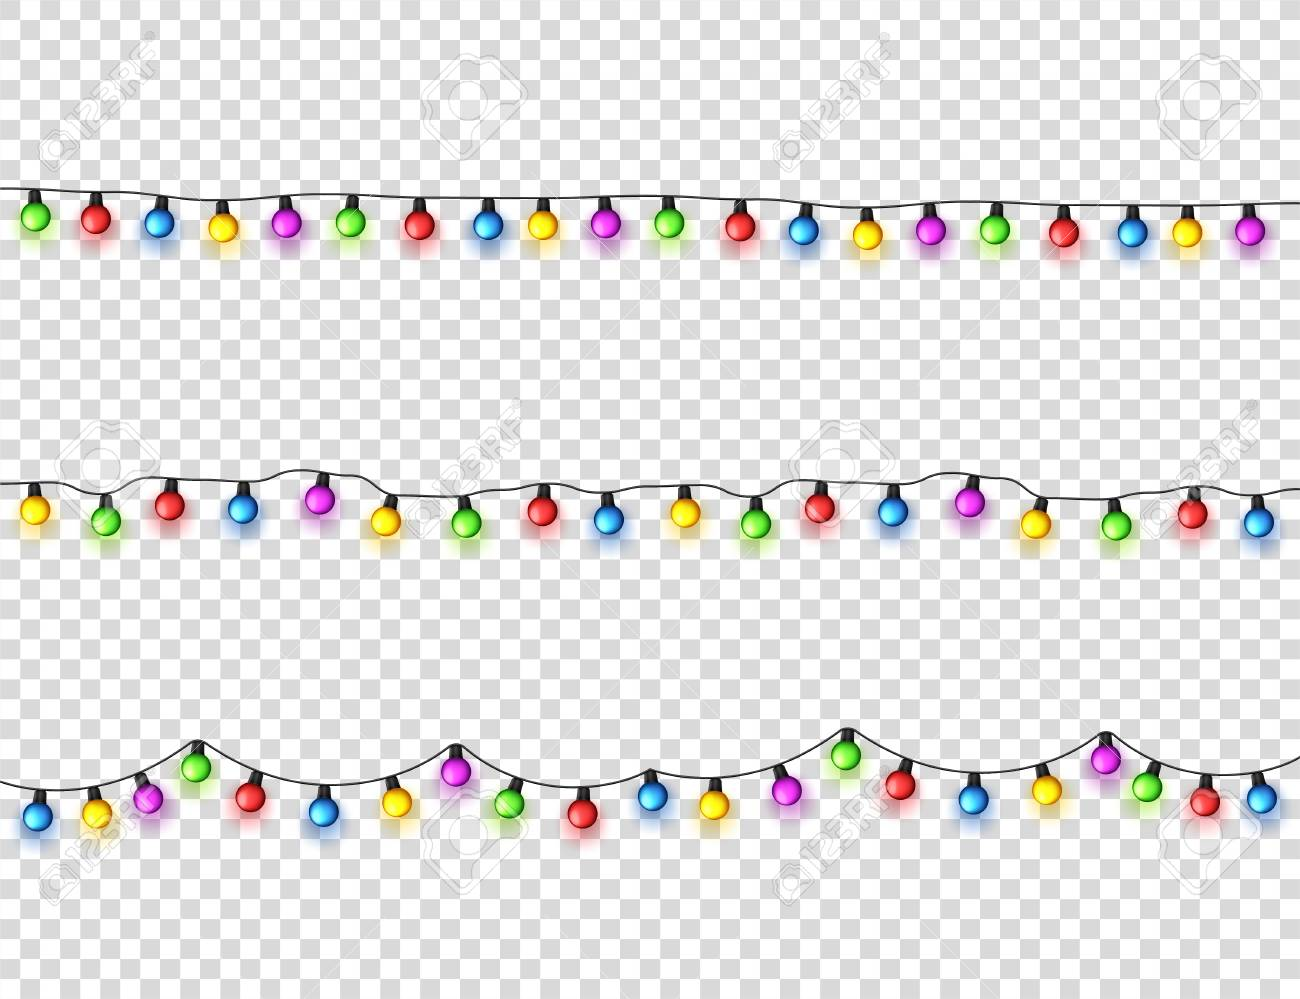 Christmas glowing lights. Garlands with colored small bulbs. Xmas holidays. Christmas greeting card design element. New year,winter - 115591280